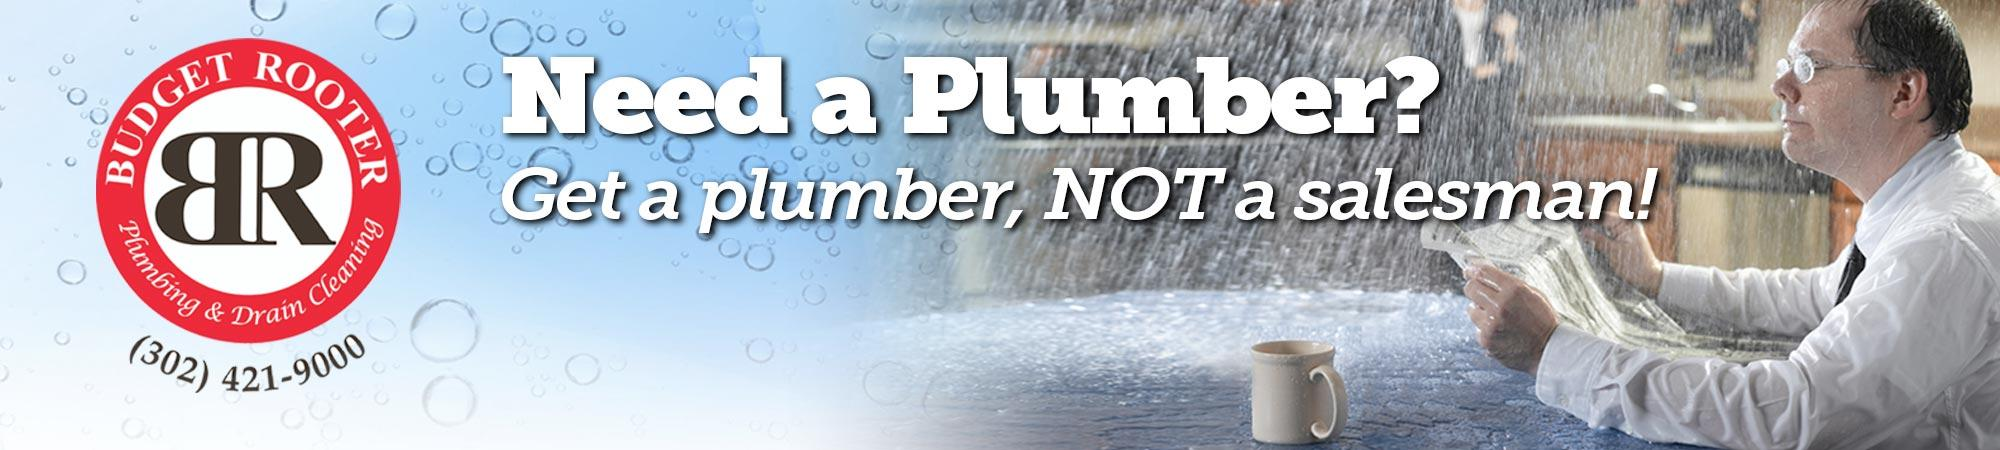 Plumbing Services by Budget Rooter in New Castle County, DE